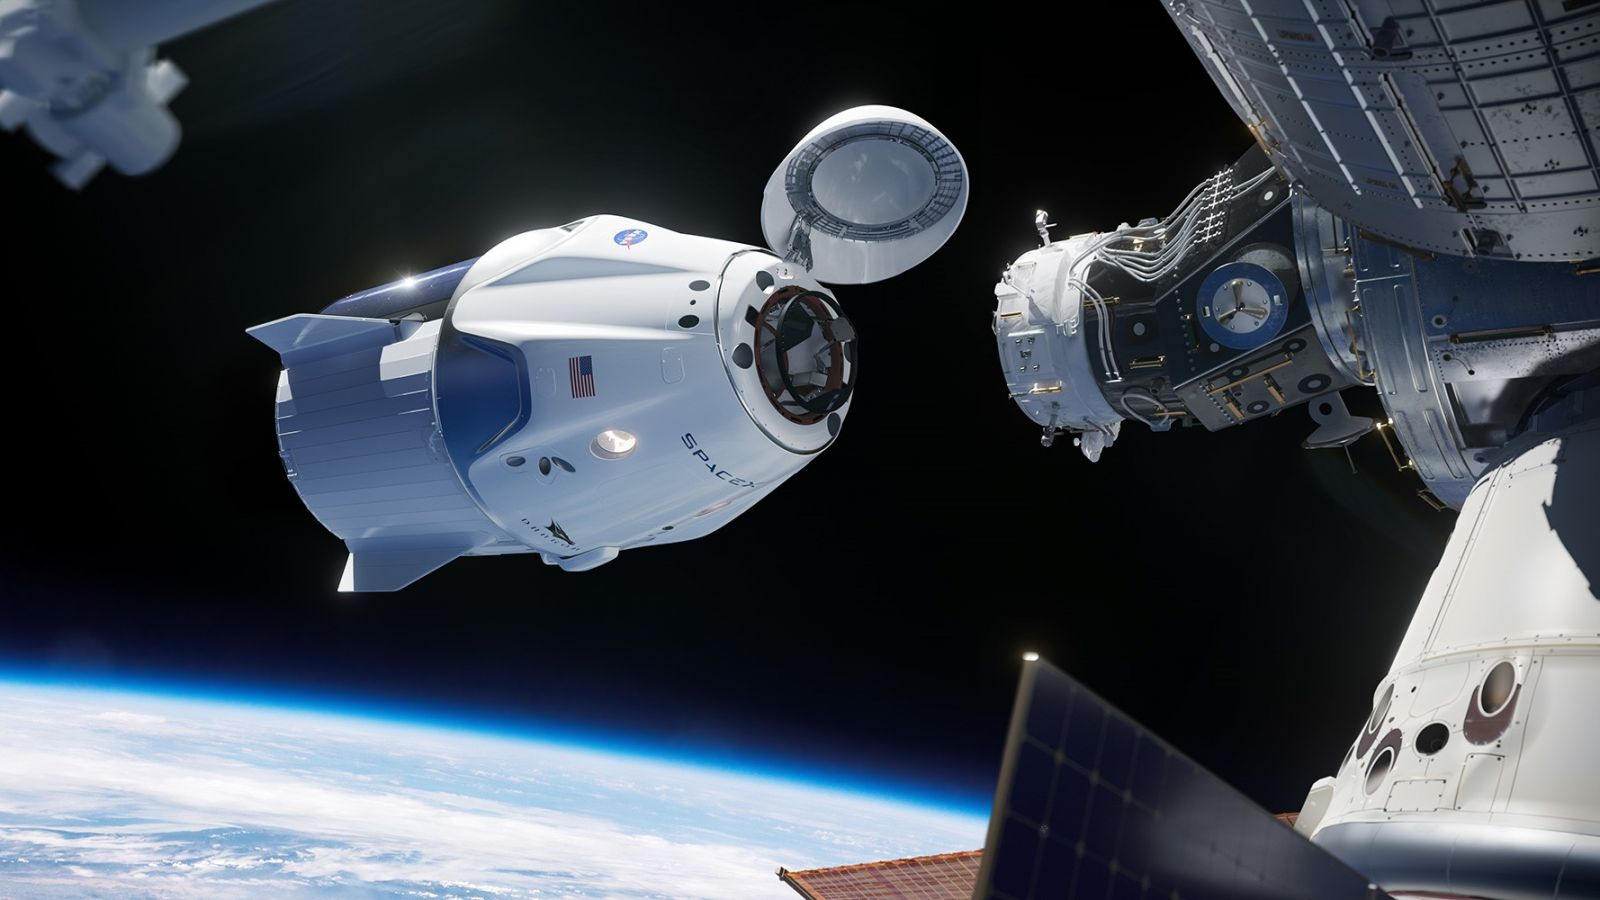 An artistic depiction of SpaceX Crew Dragon spaceship at the final approach to the International Space Station. Credit from image: SpaceX